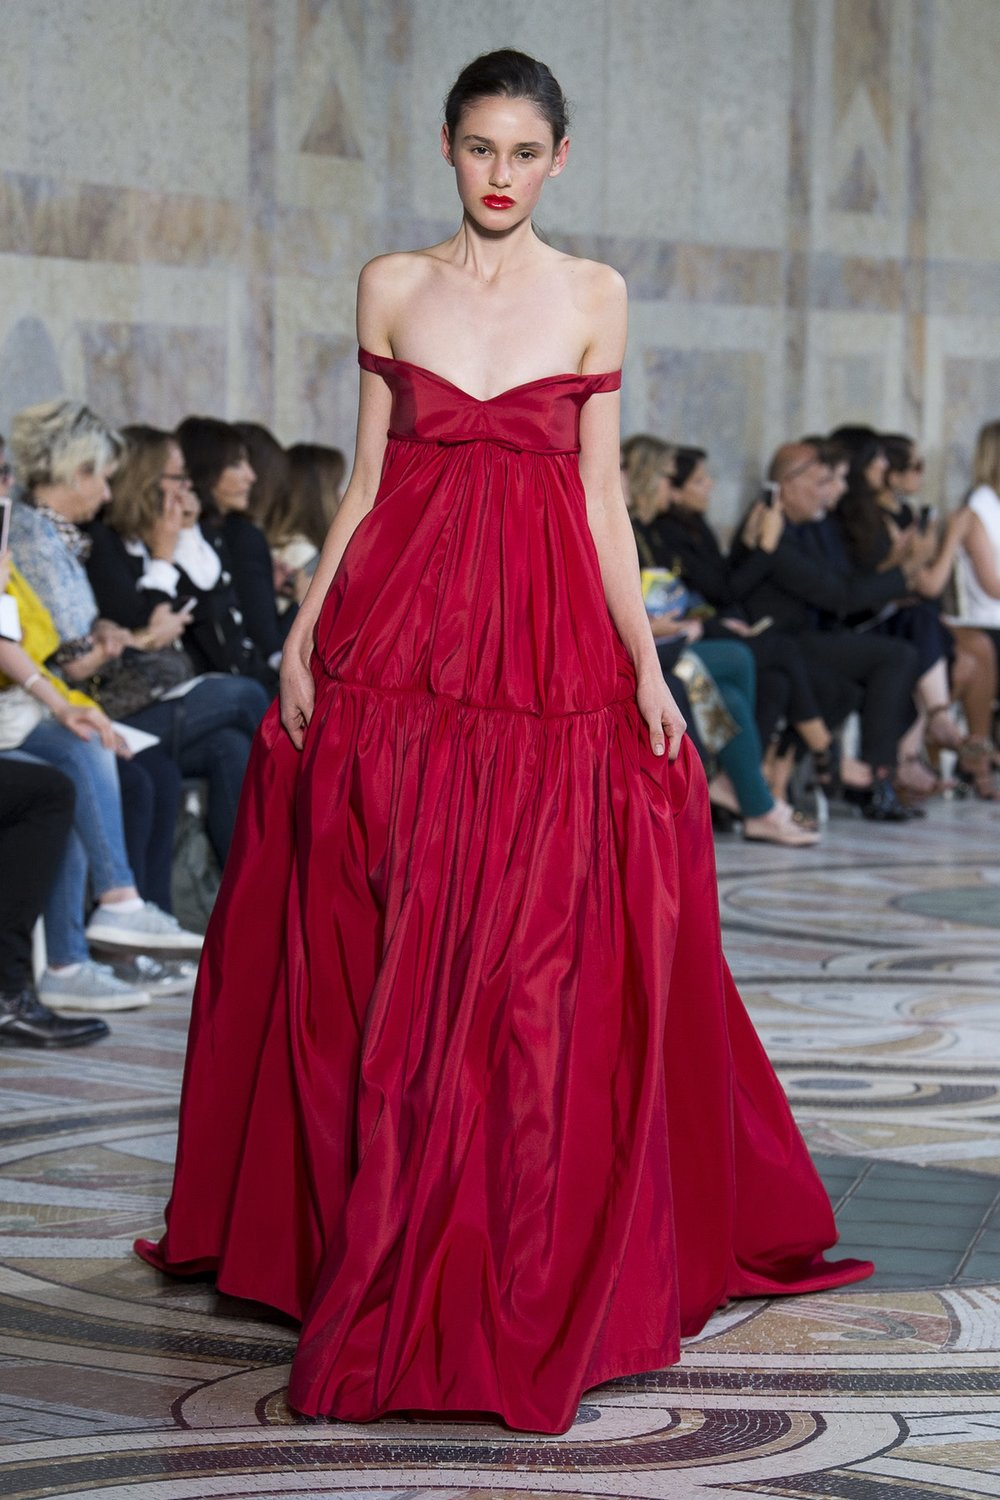 Giambattista Valli Autumn 2017 Haute Couture, image via The Business Of Fashion